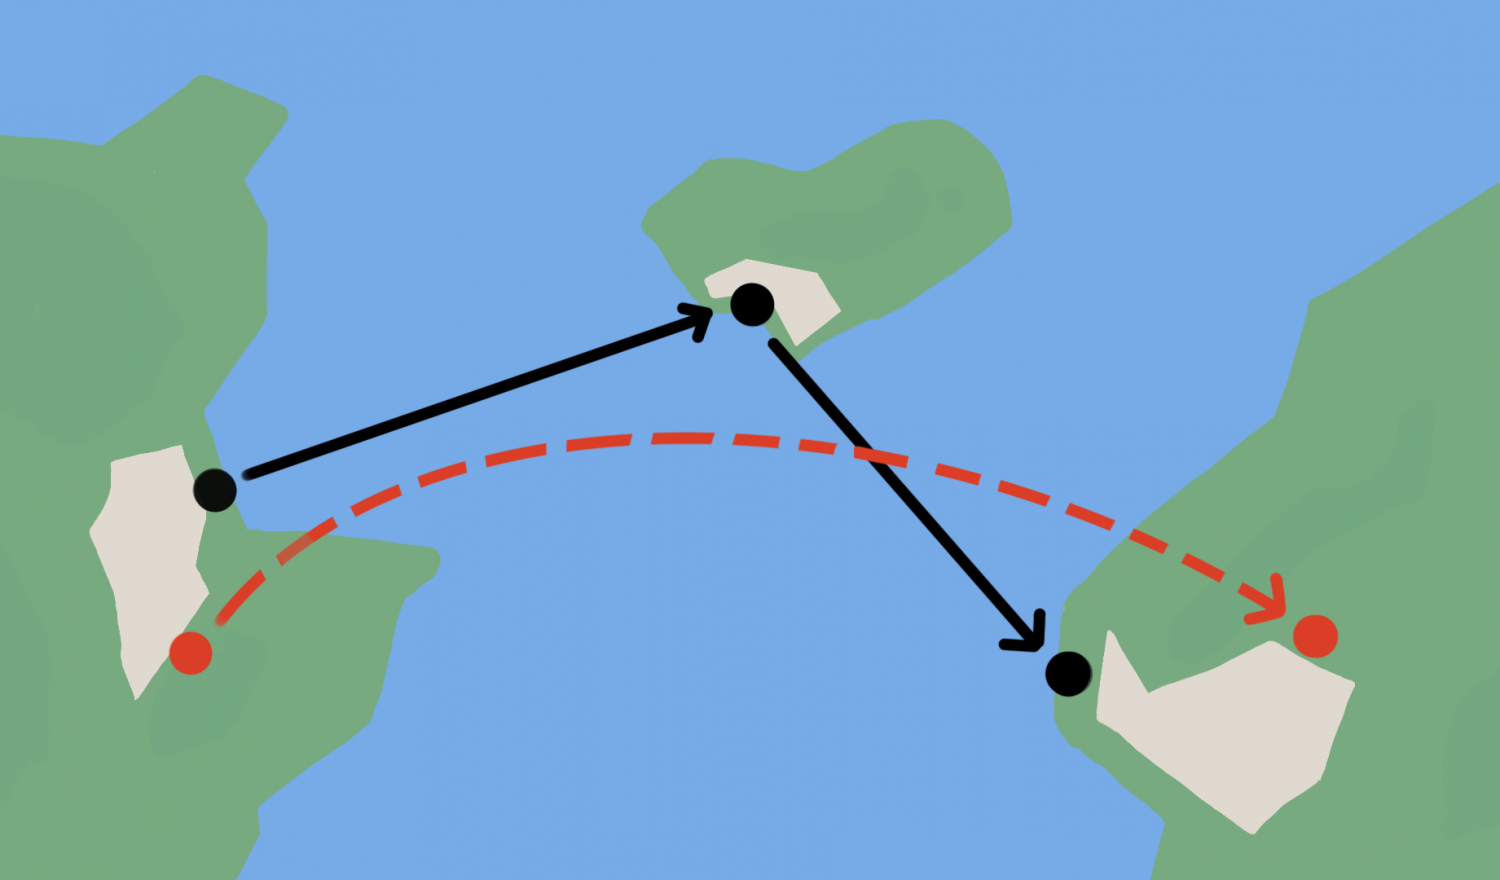 different routes to calculate the time of arrival